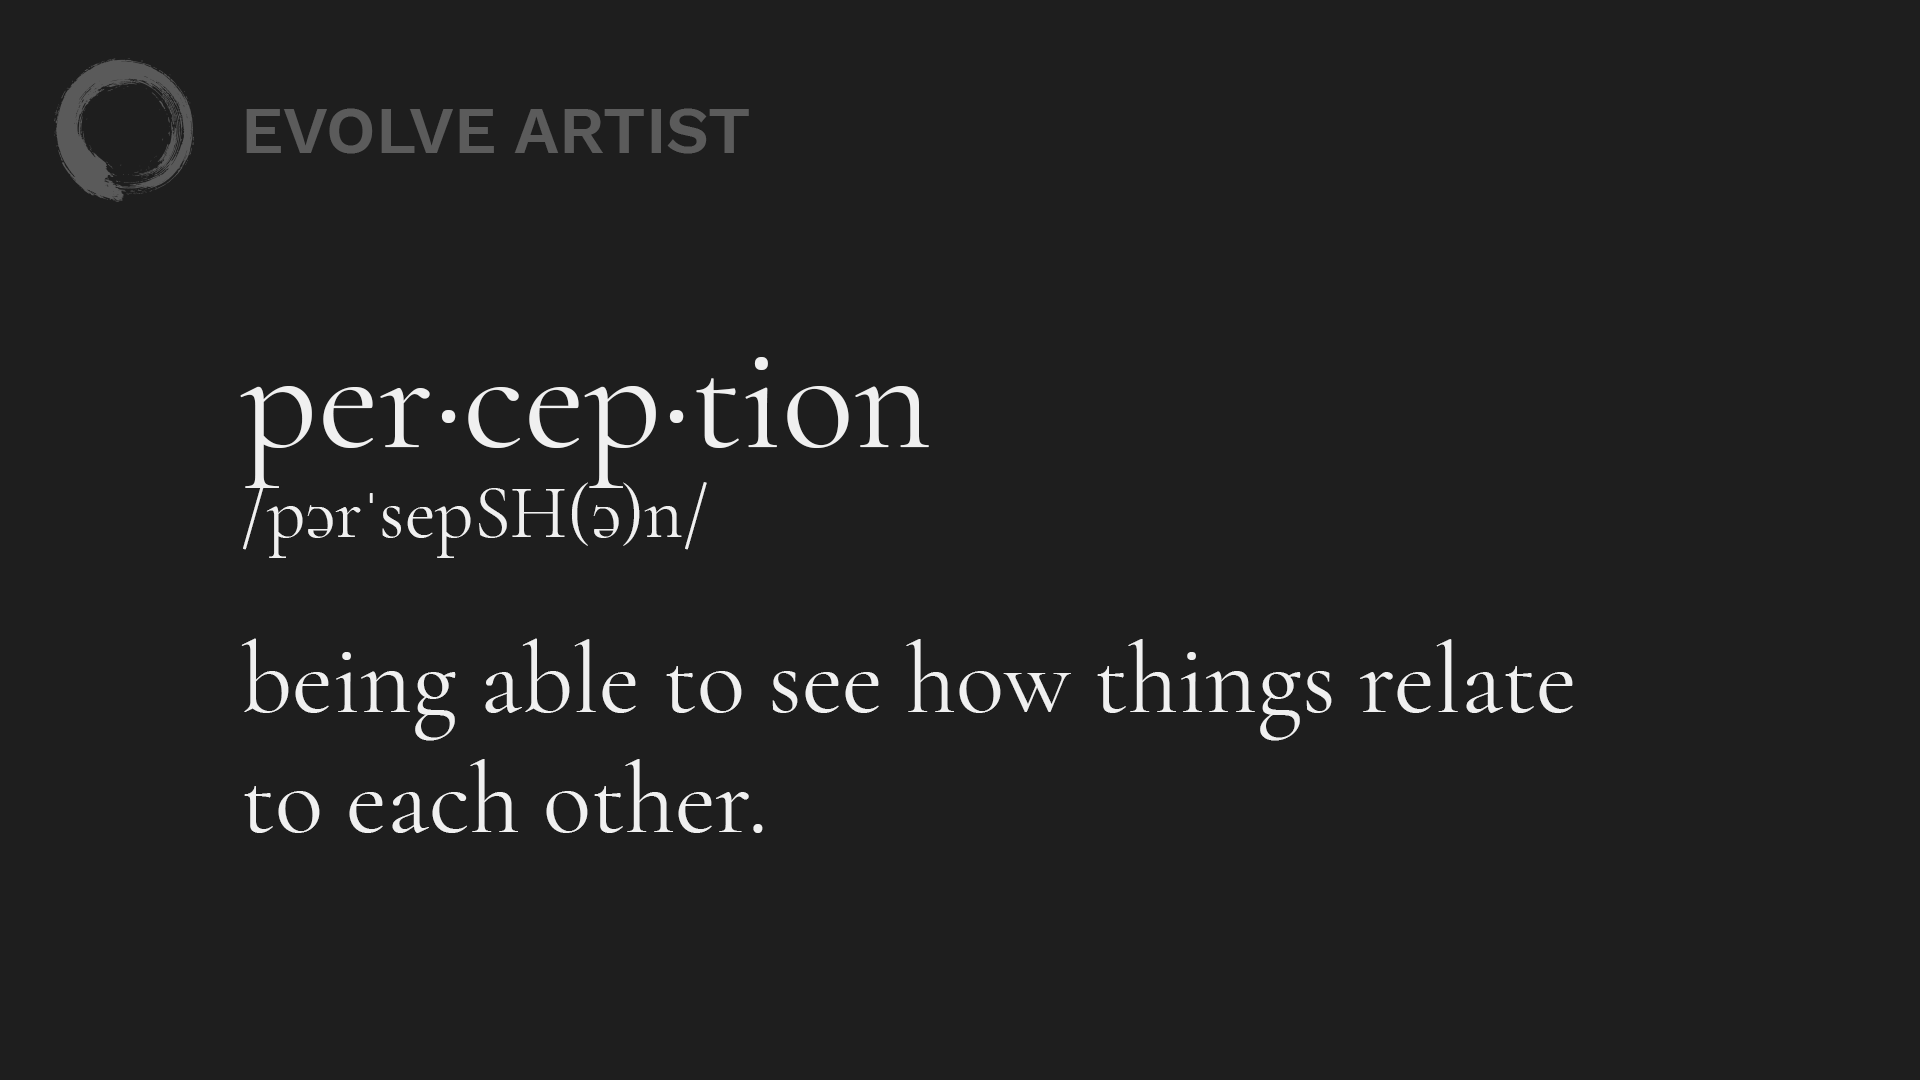 Perception Definition - How to See like an Artist